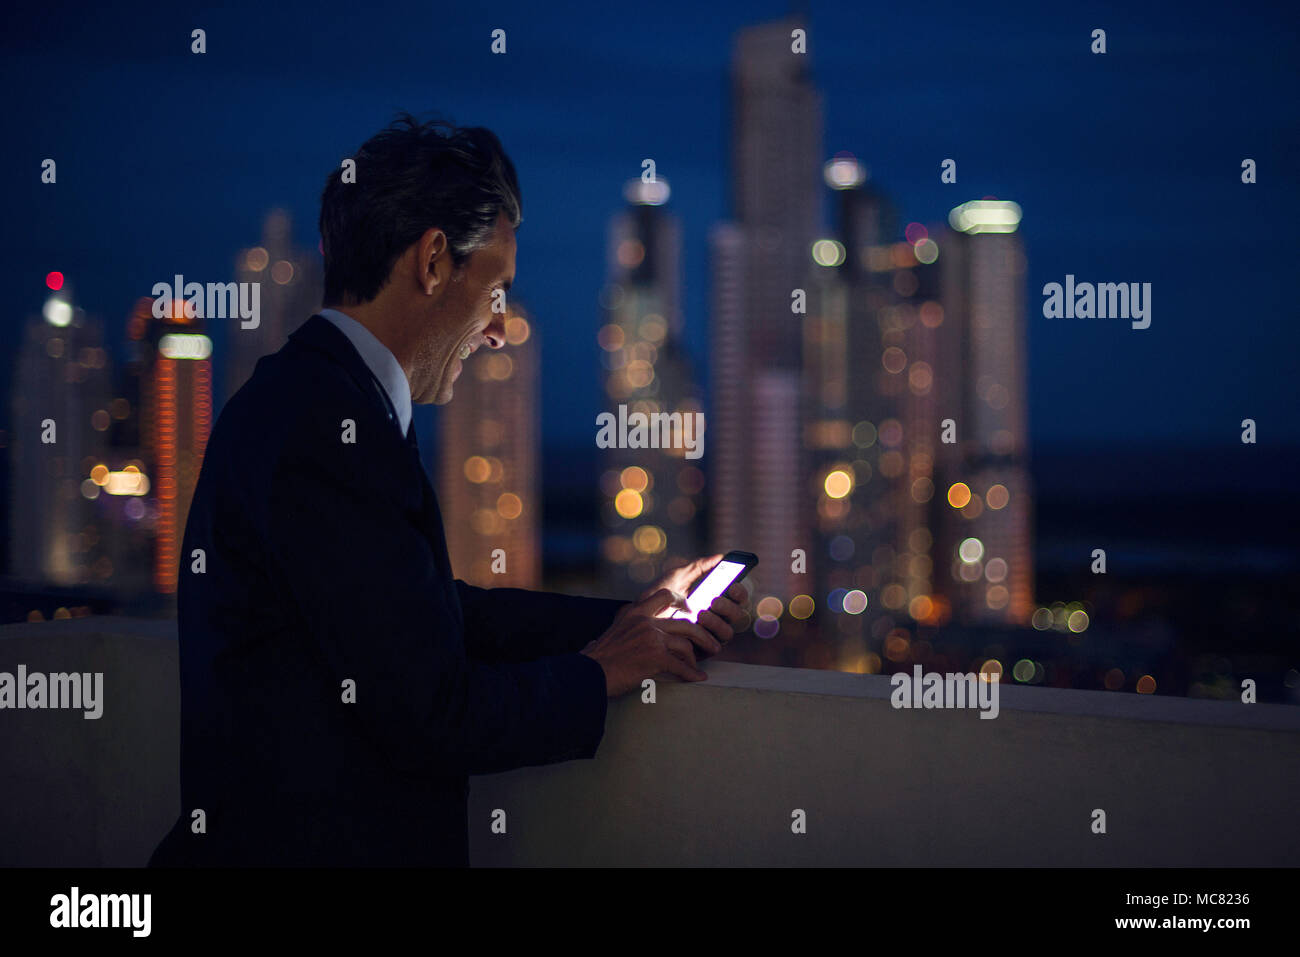 Businessman on high rise rooftop using mobile phone - Stock Image